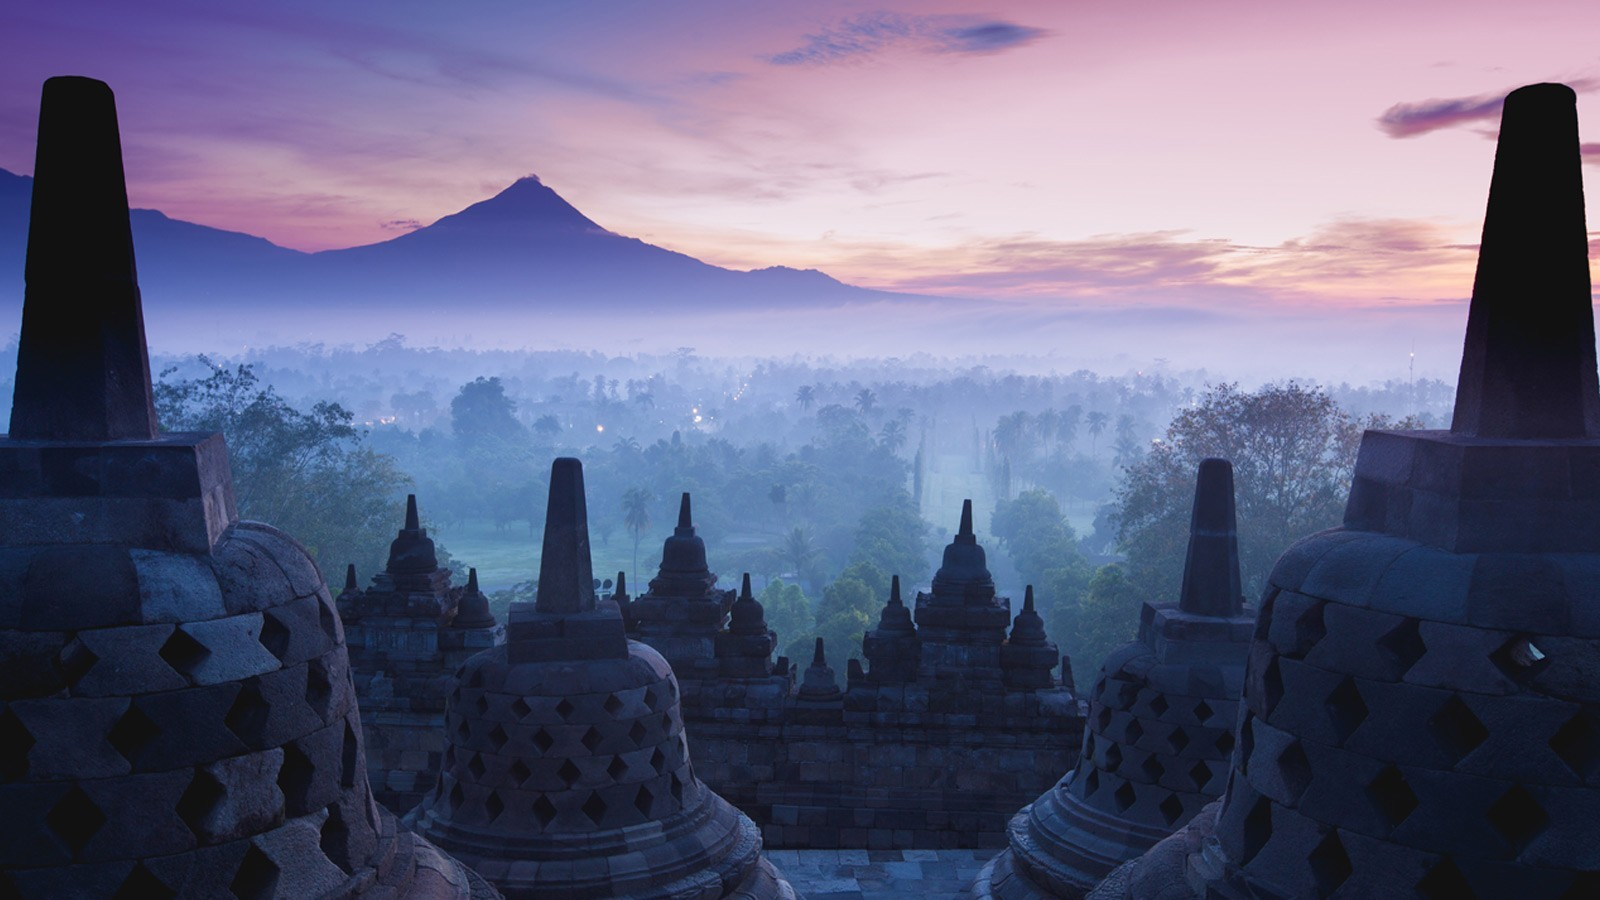 Borobudur (Buddhist temple) is one of the most popular tourist attractions of Indonesia - Serious Facts